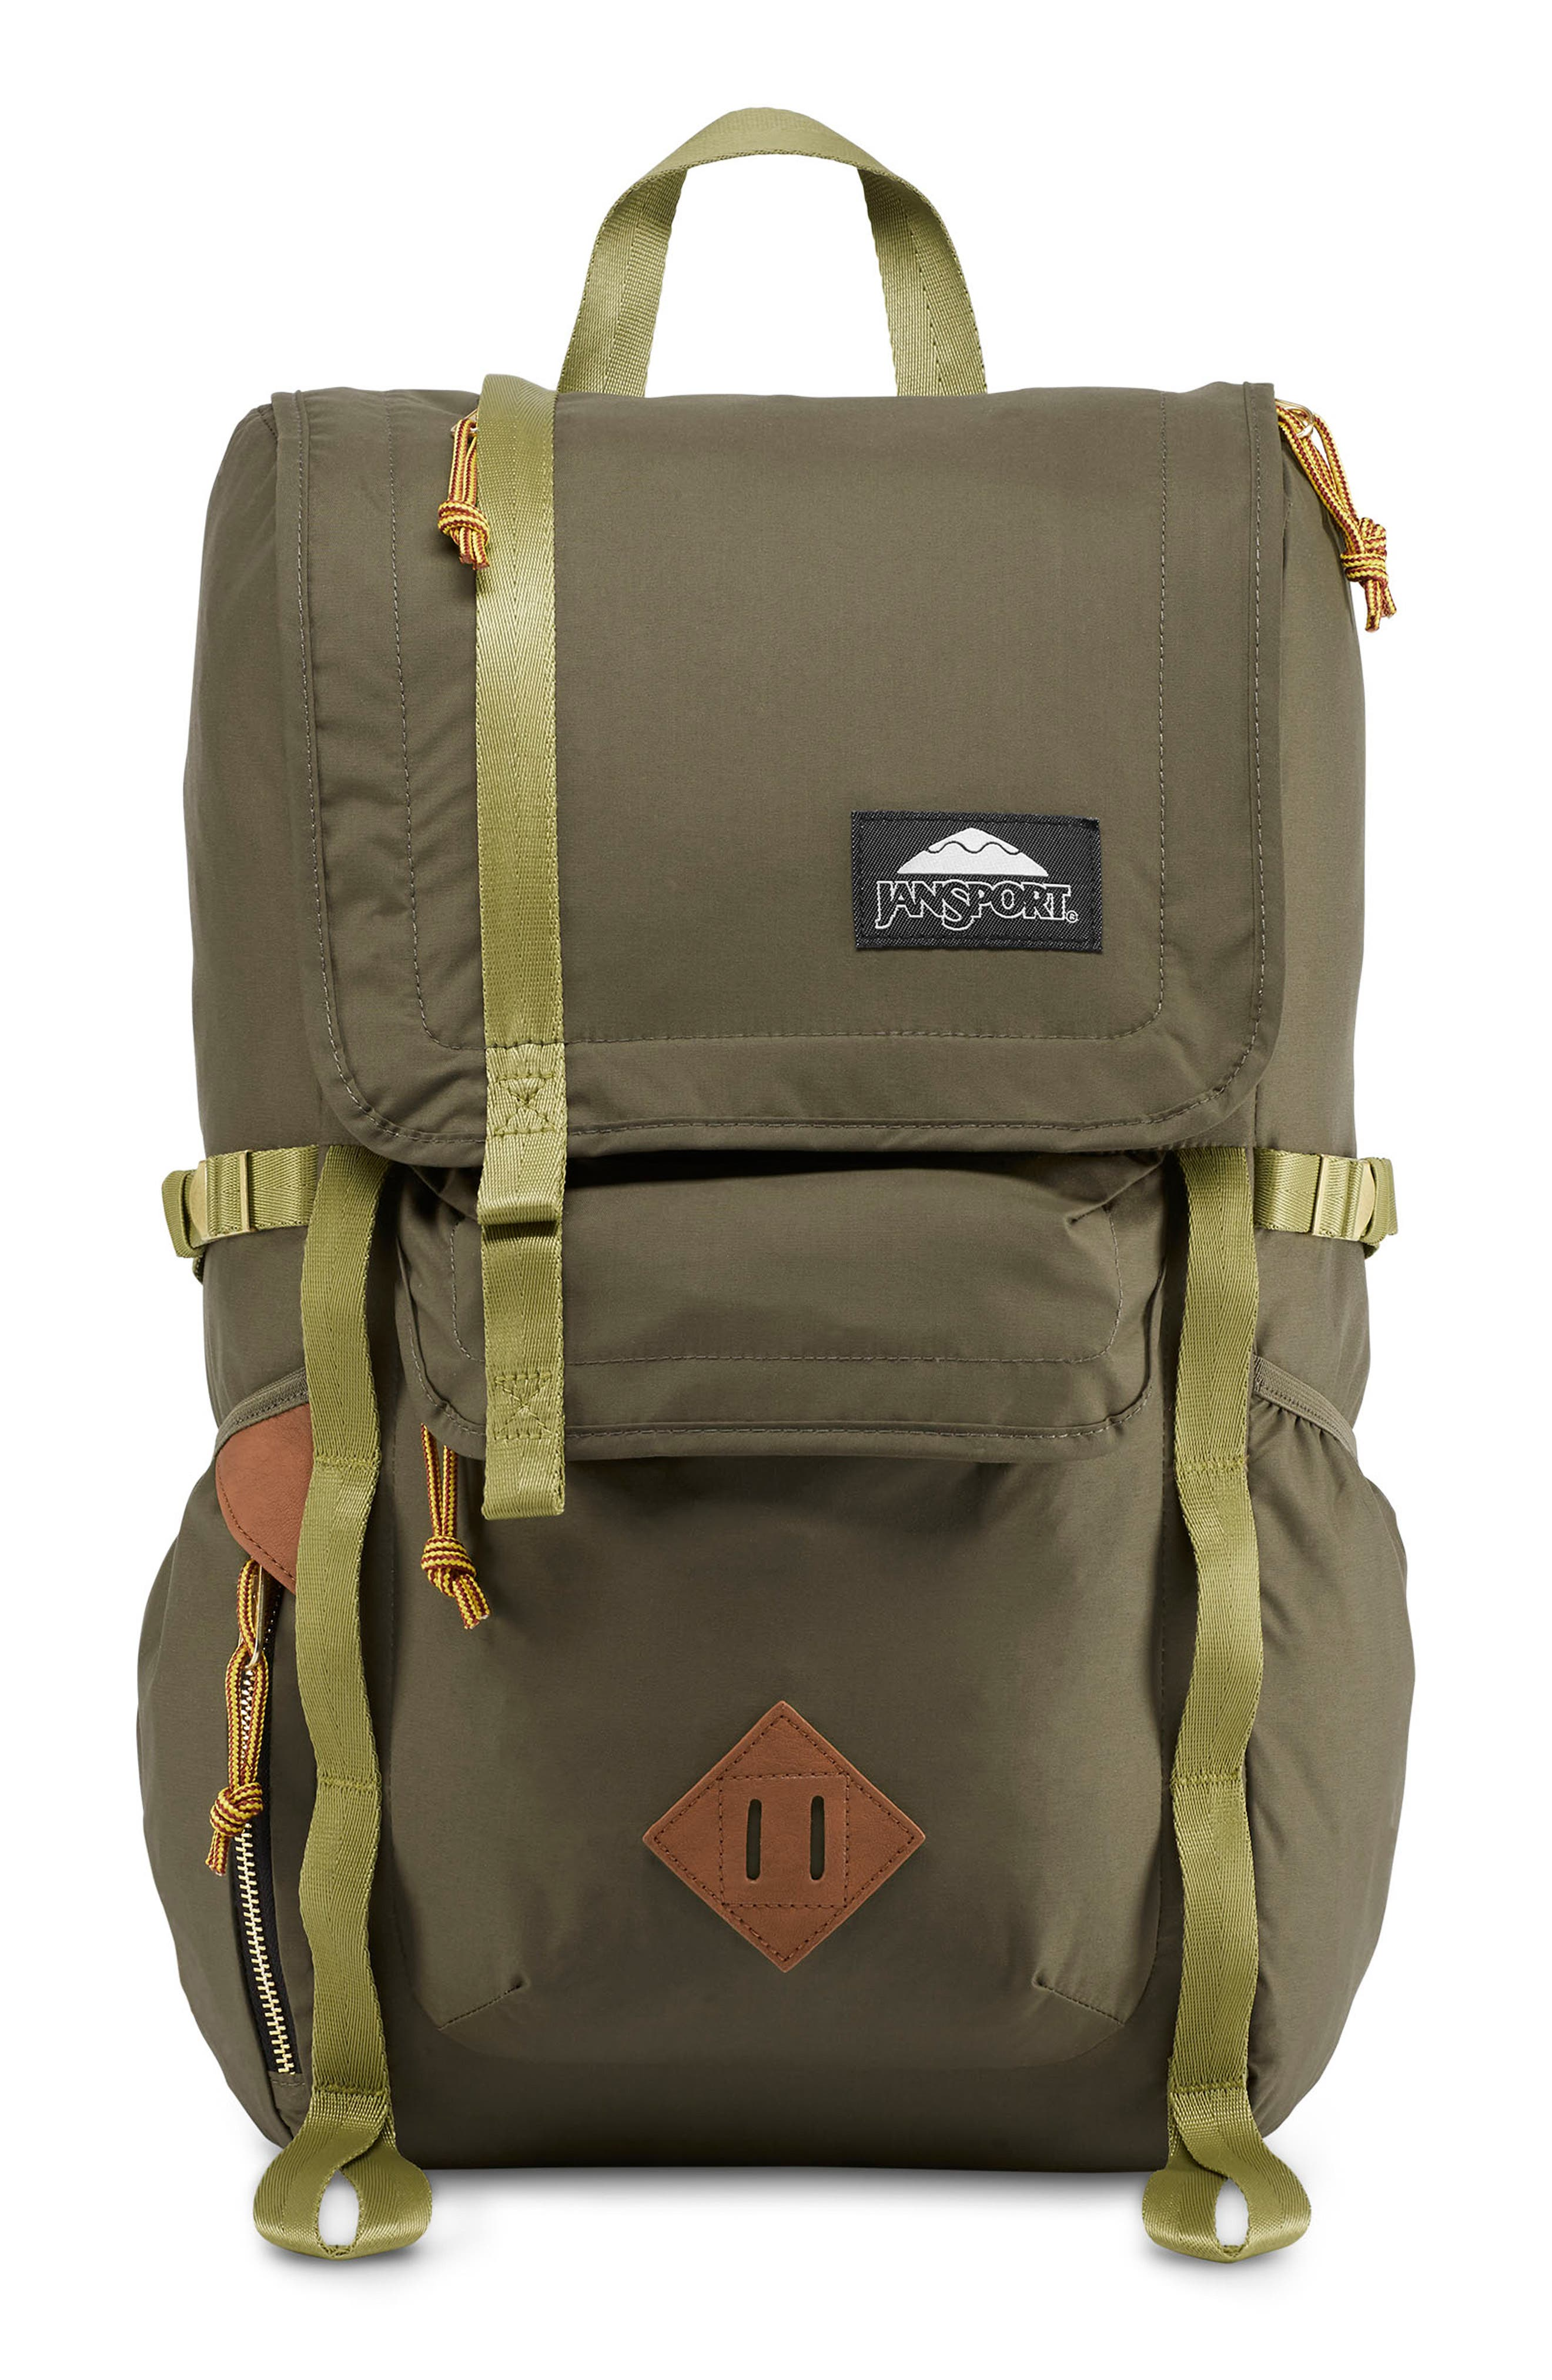 JANSPORT Standard Issue Hatchet Backpack - Green in Alpha Green